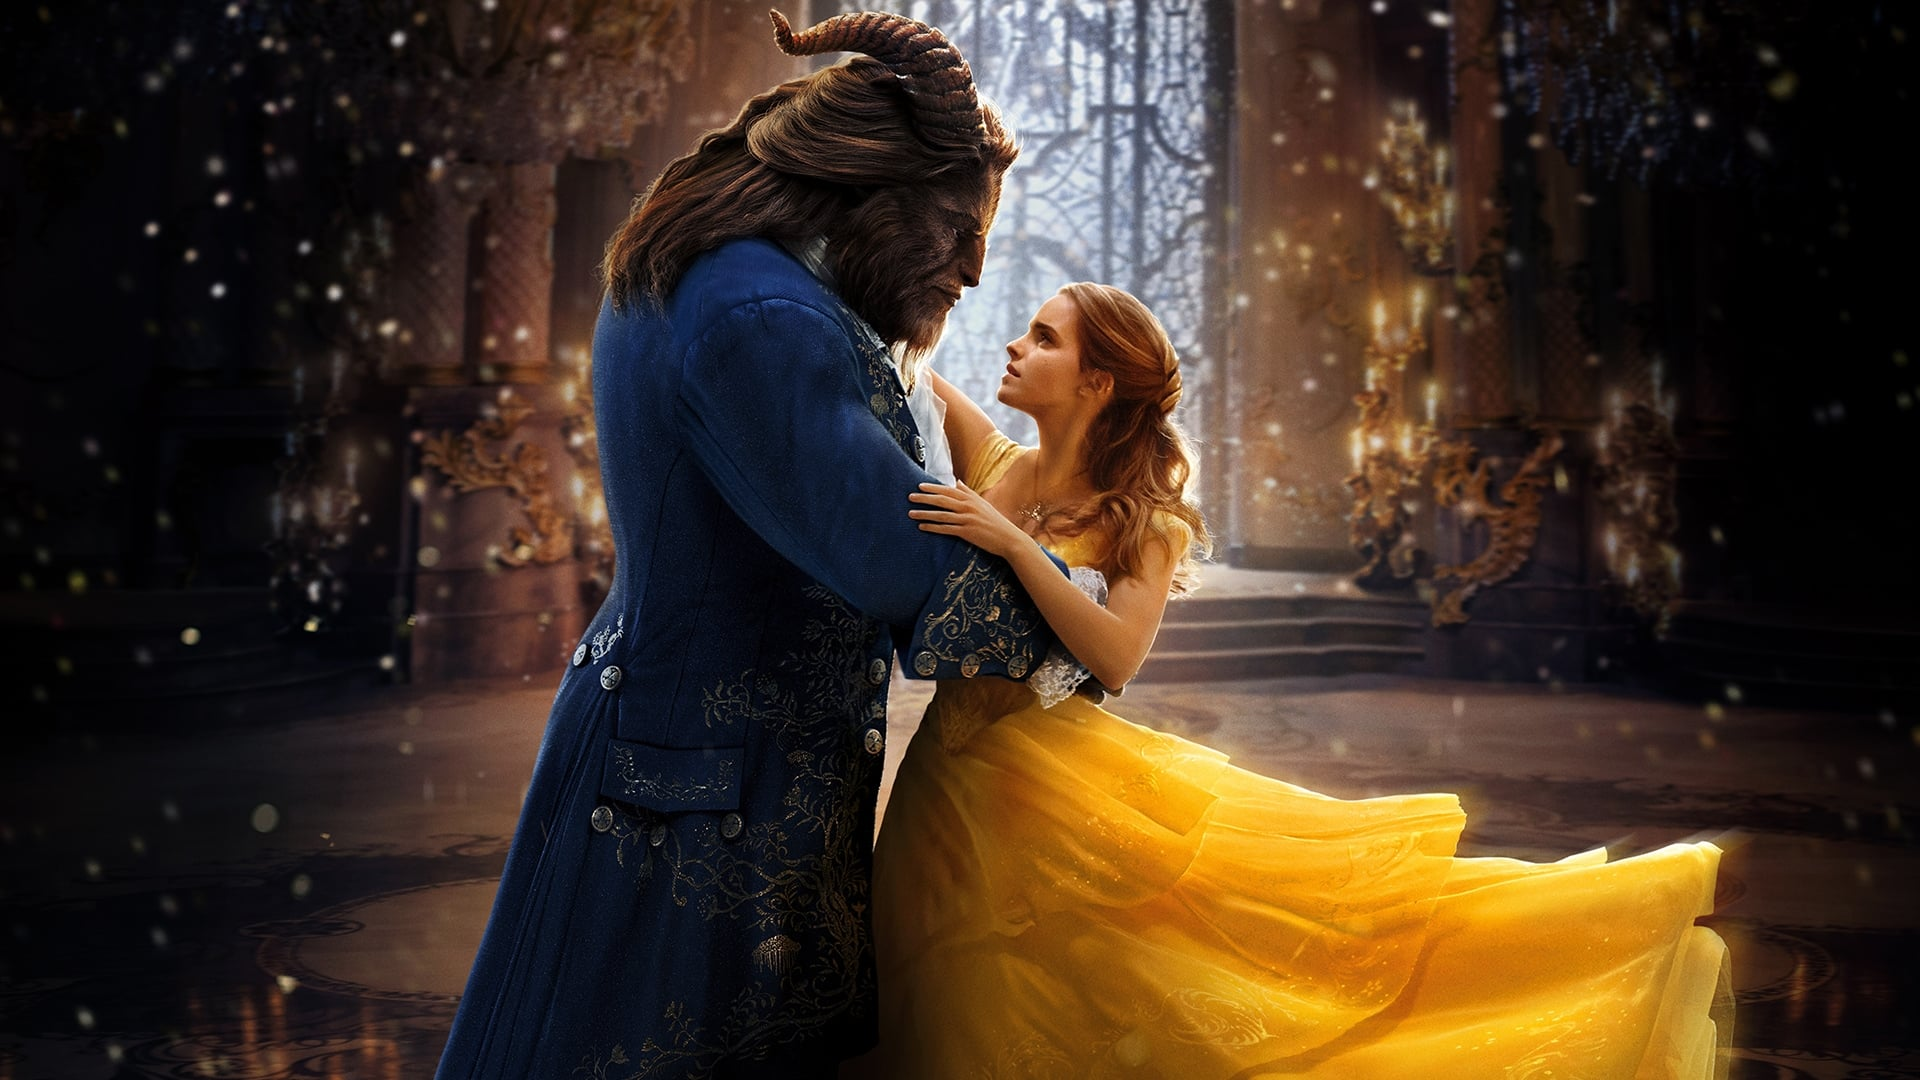 Full Free Watch Beauty and the Beast 2017 Movie Online